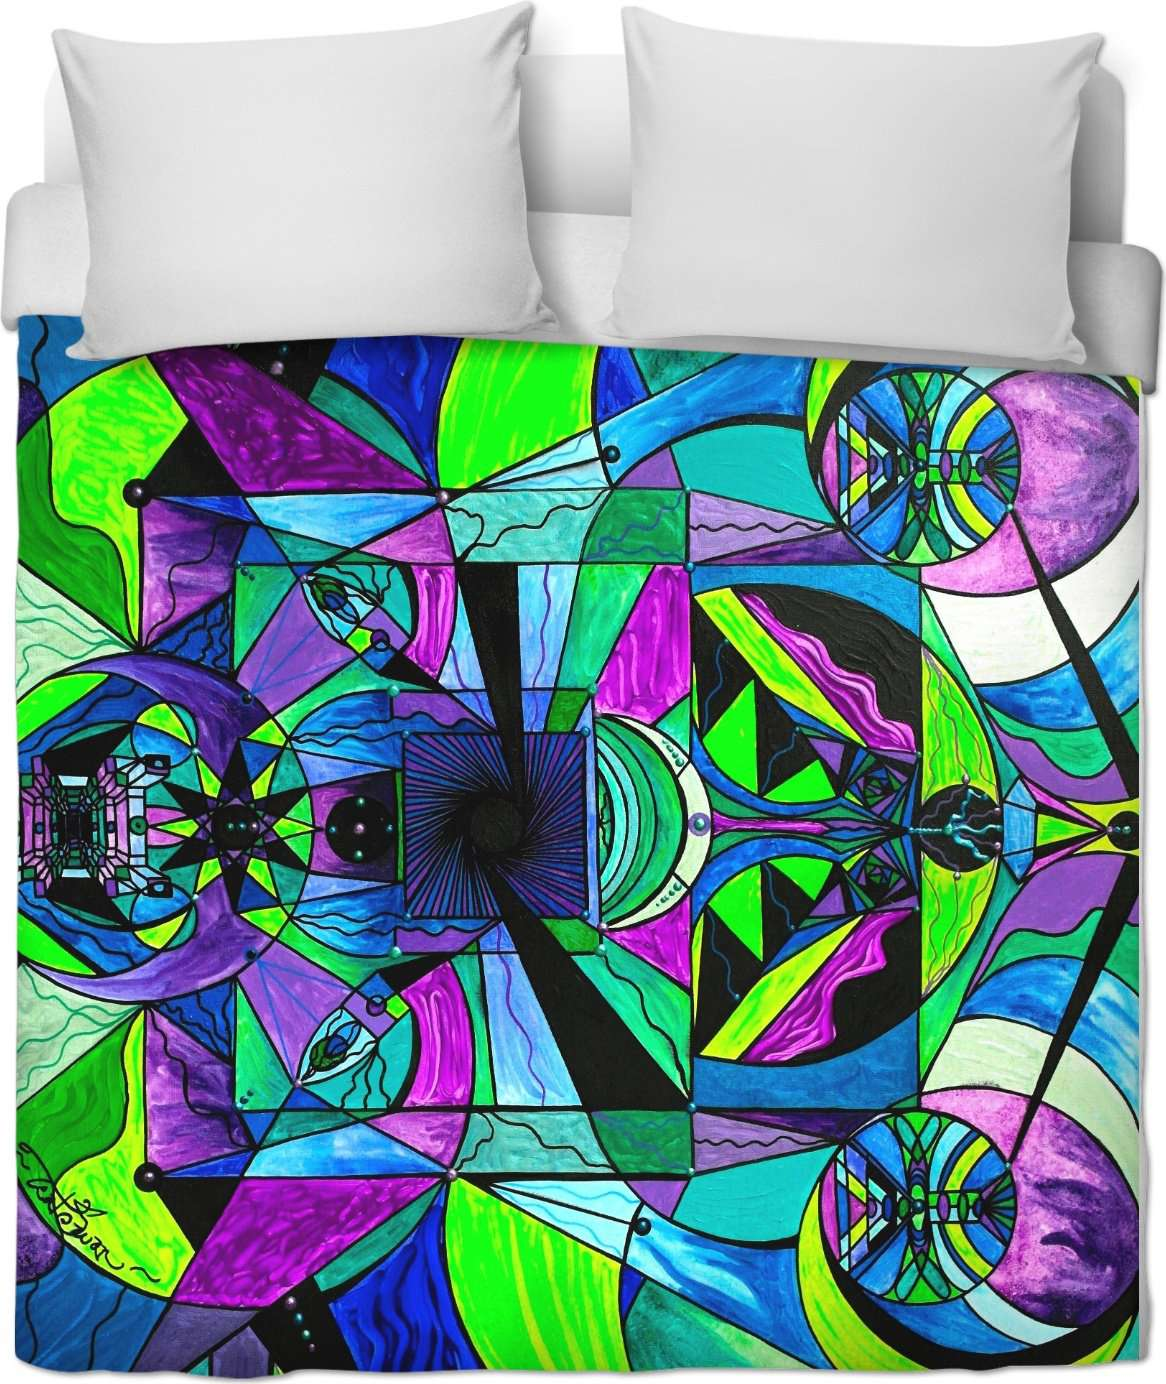 Arcturian Astral Travel Grid - Duvet Cover